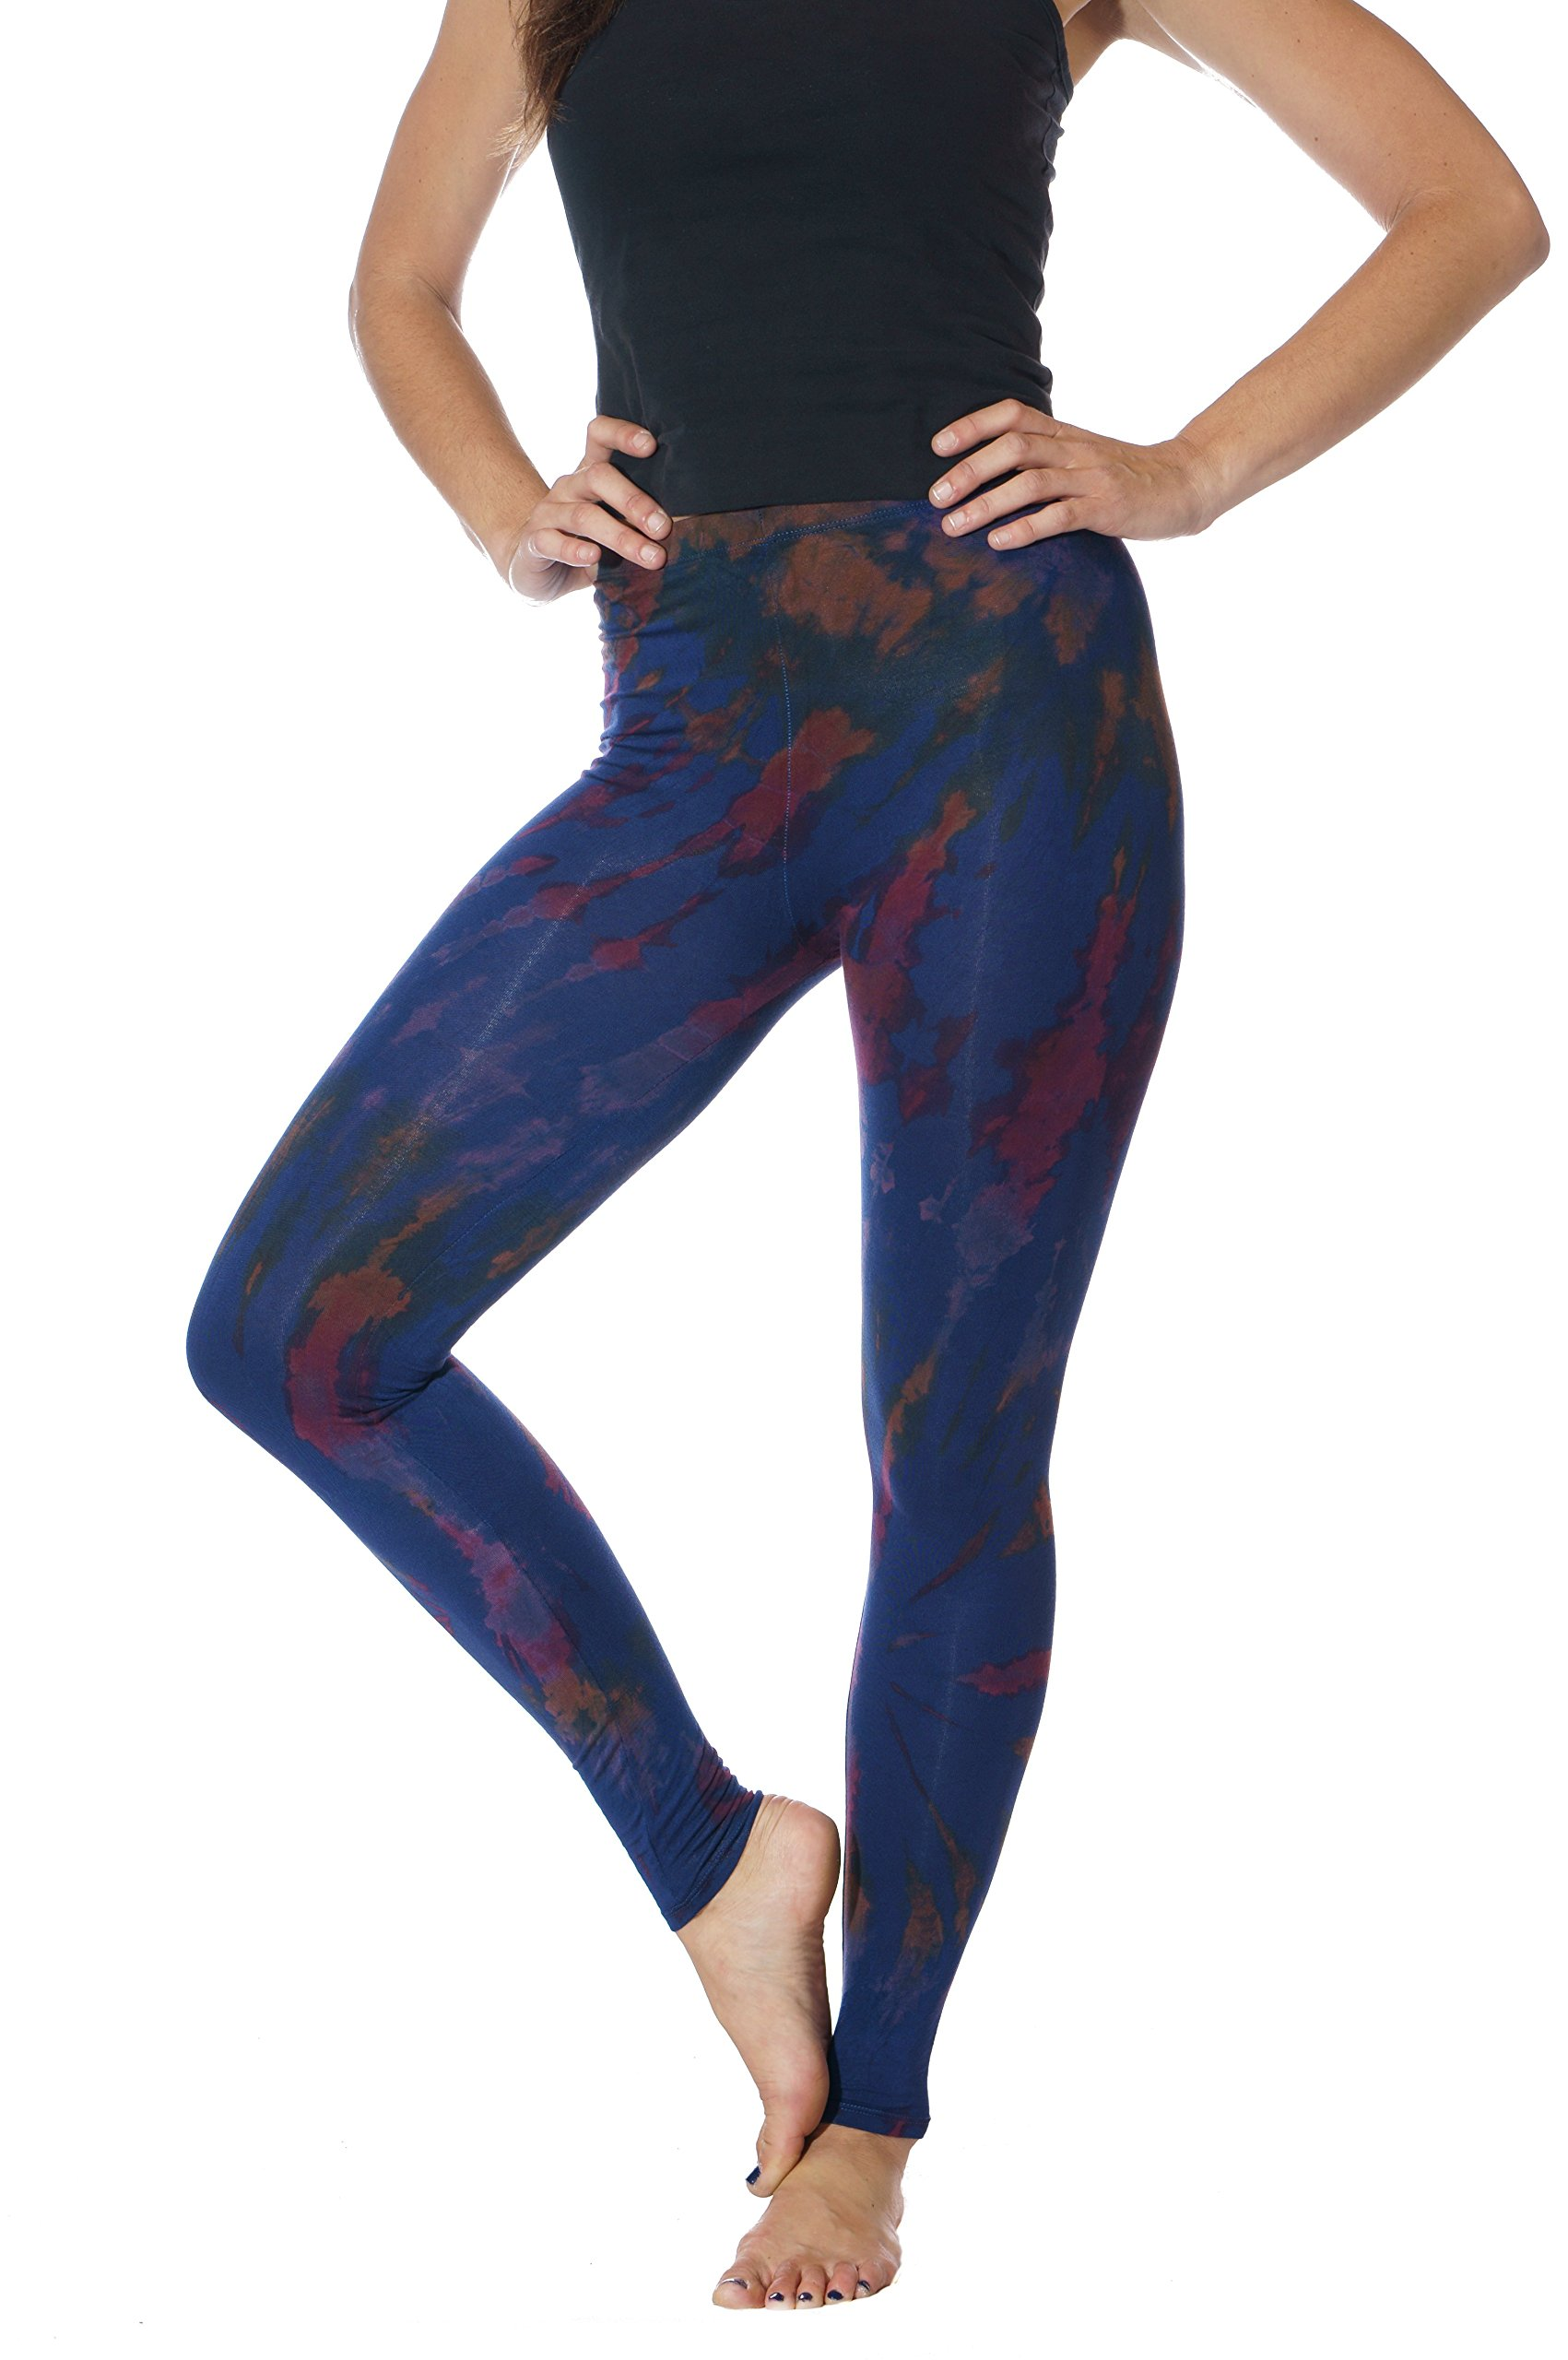 Tie Dye Cotton Spandex Leggings - Great for yoga, fashion, festival, everyday wear, hiking, travel, relaxing